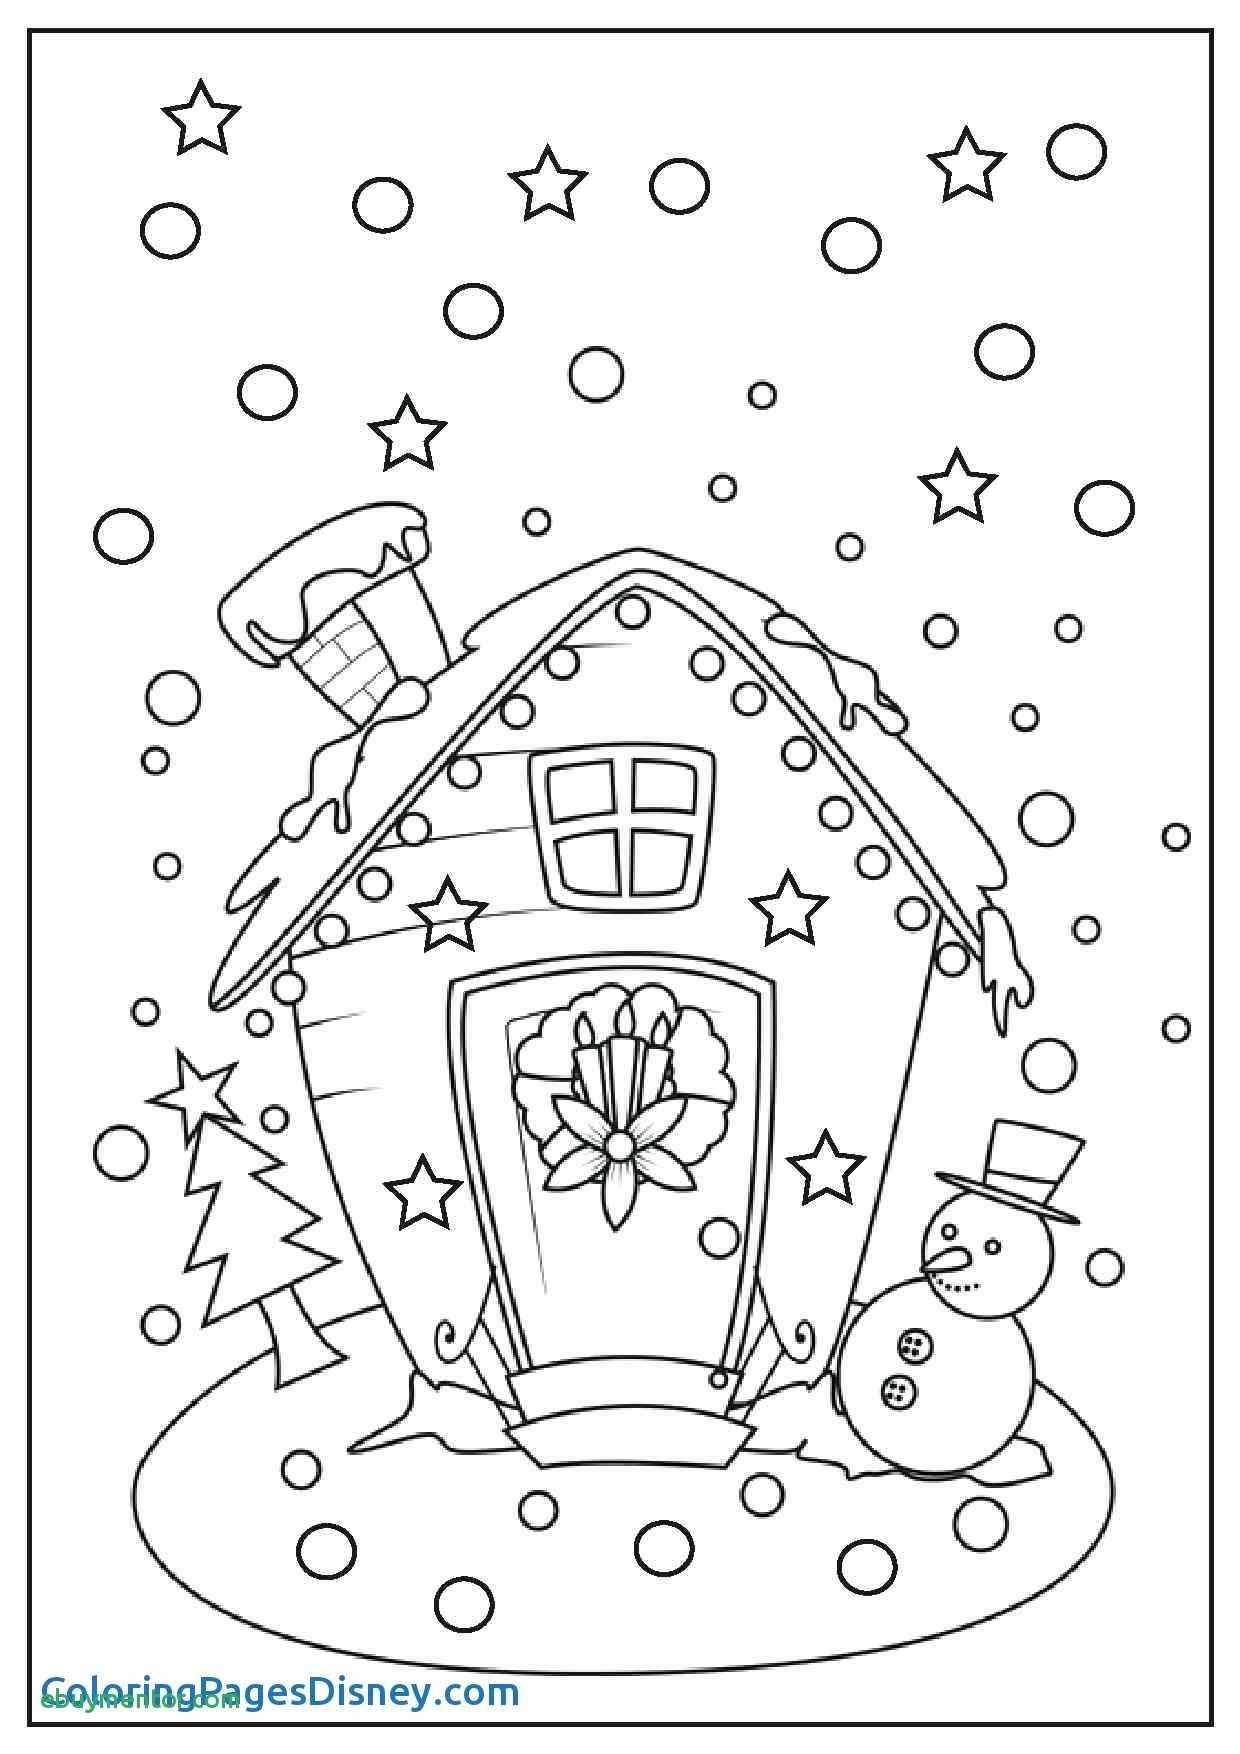 Christmas Coloring Books In Bulk With Color Drawn Santa Book Pencil And